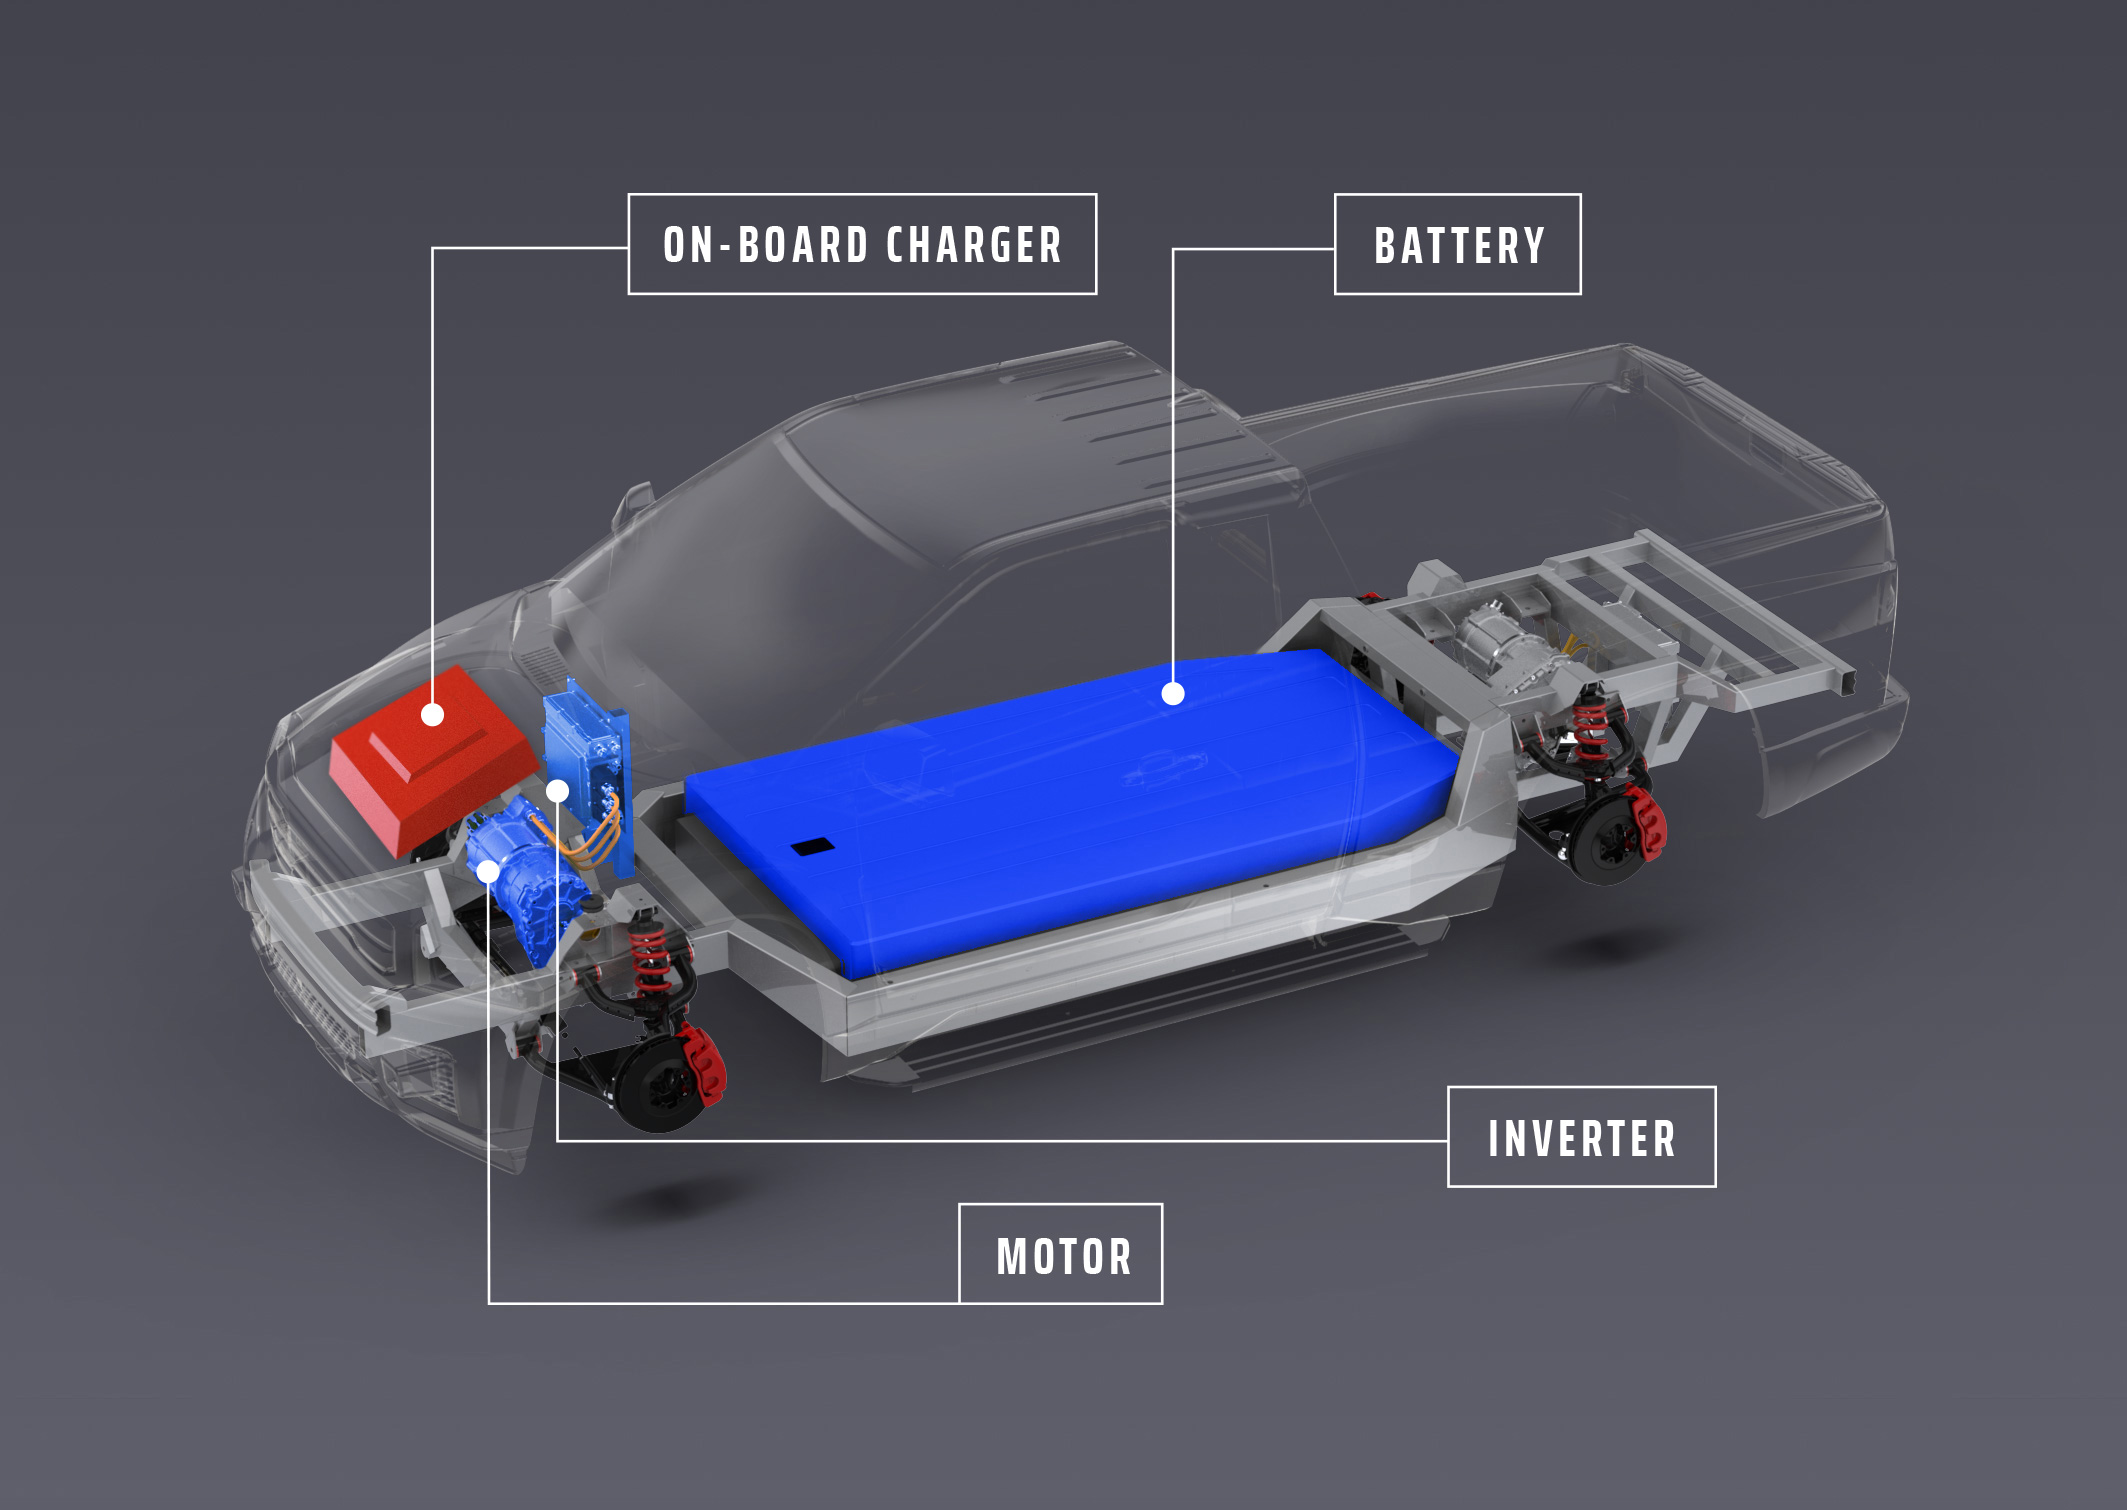 THE powertrain Explained - Powertrains consist of a motor, battery, and an inverter which:• converts battery energy from DC to AC for the motor• controls motor speed• captures energy from regenerative braking to recharge the batteryAll existing electric vehicles require heavy, bulky and expensive on-board chargers.